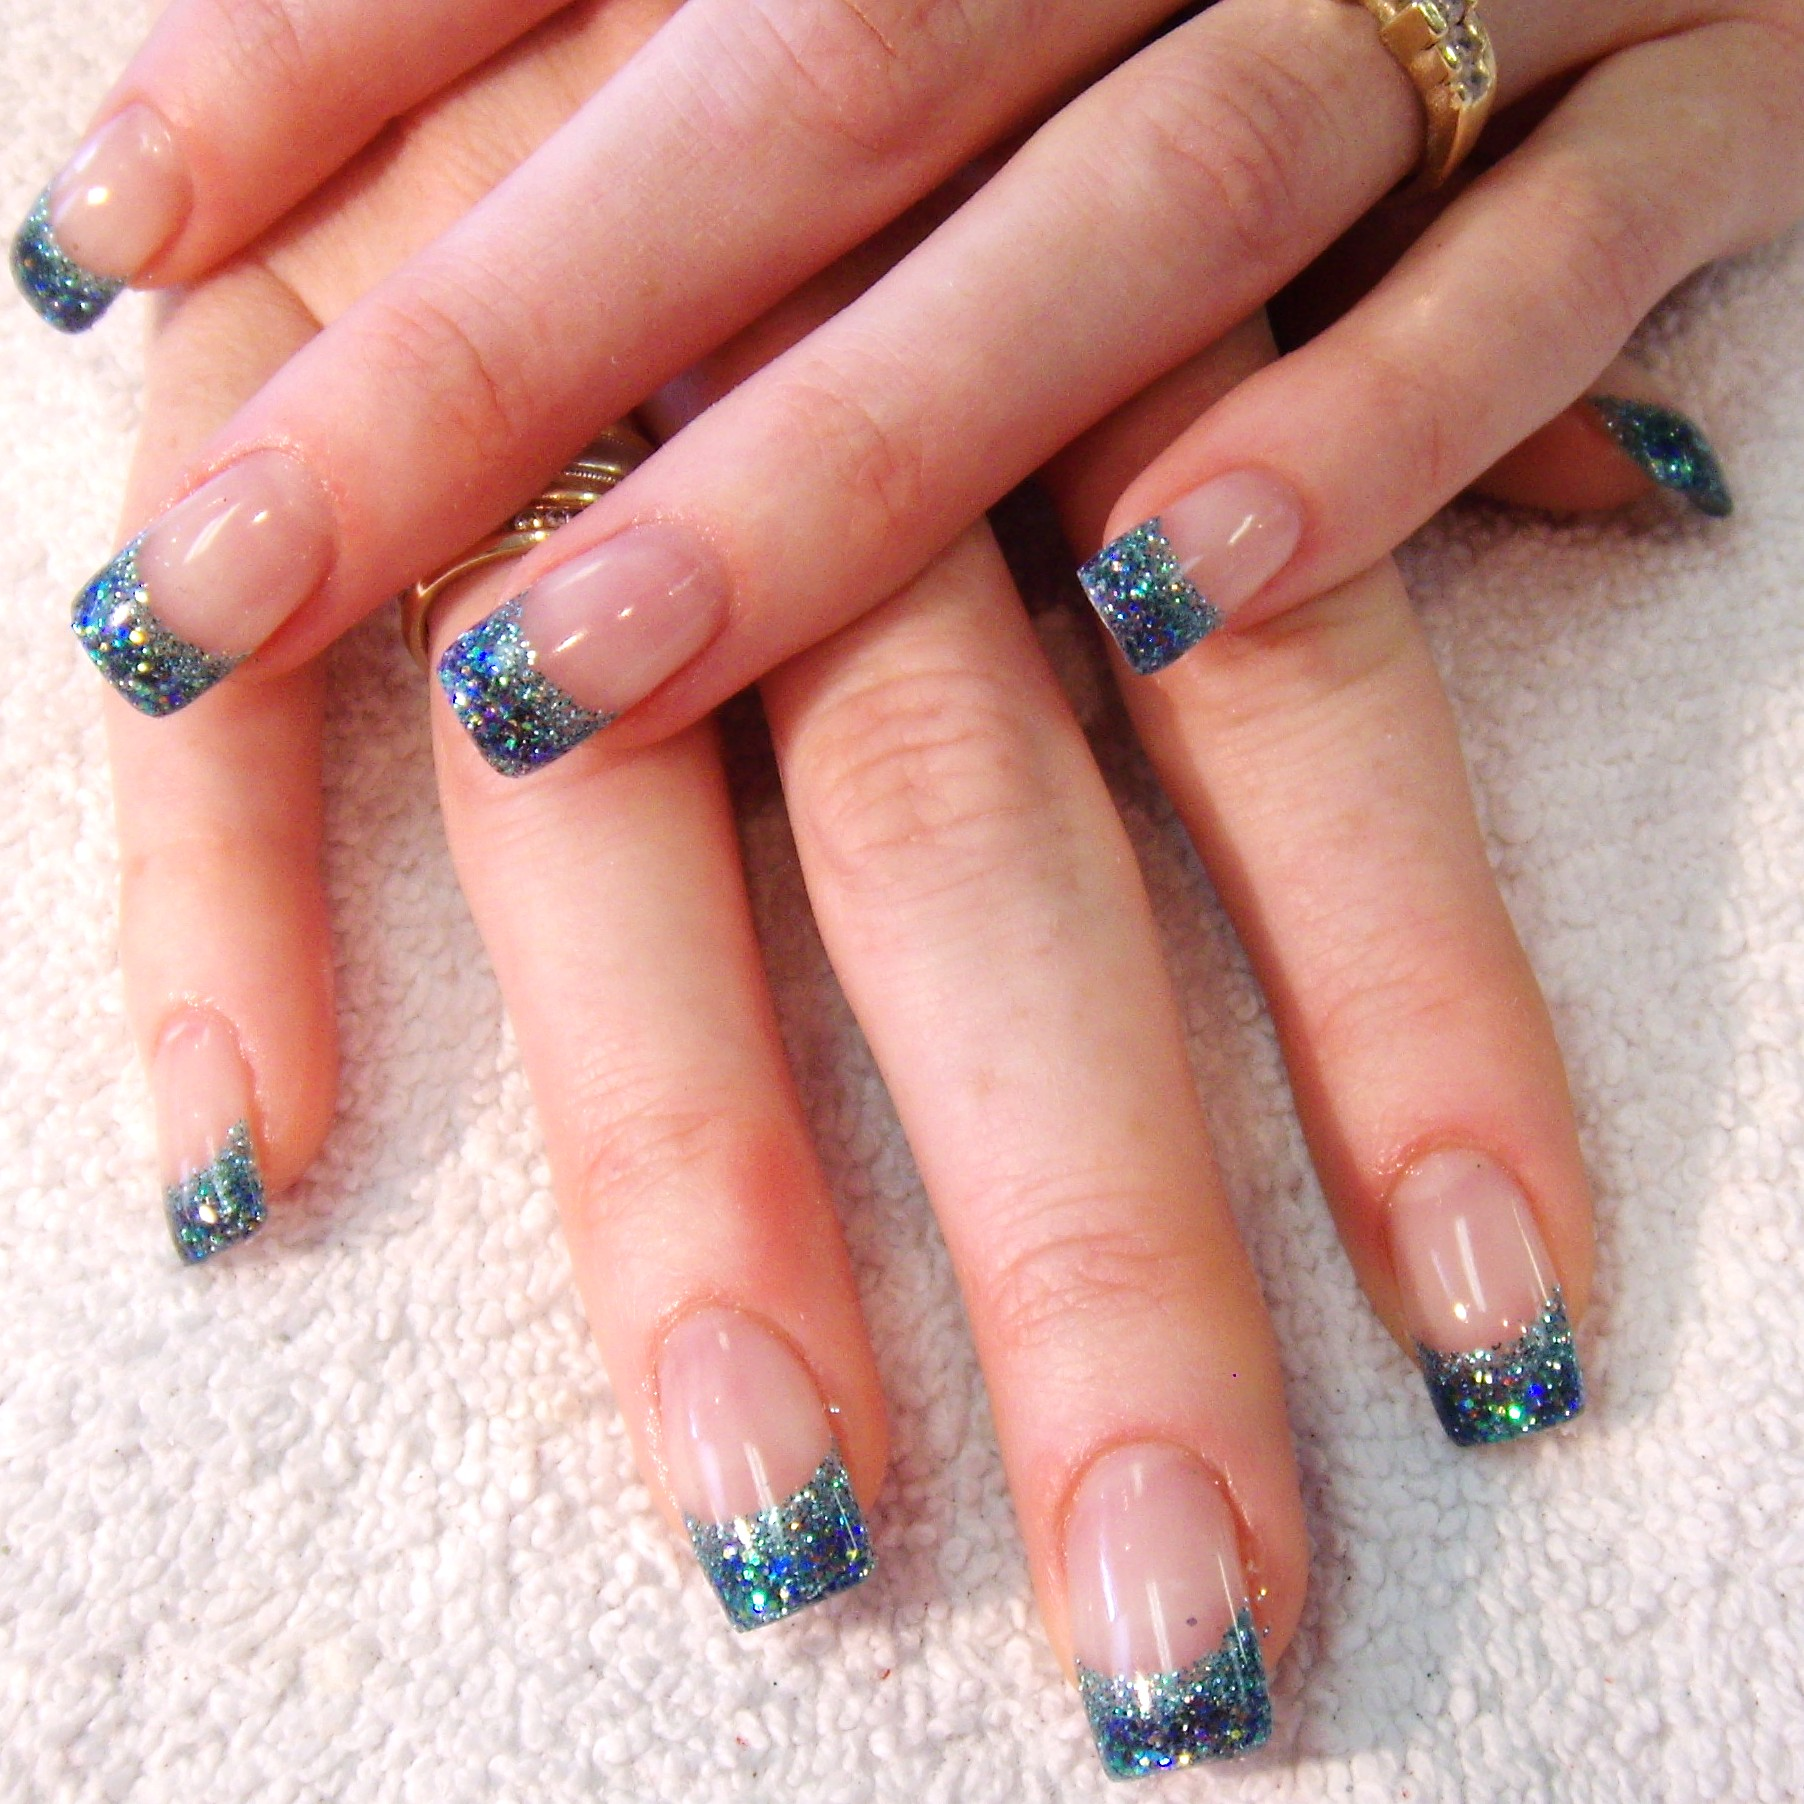 Nail designs 2014 tumblr step by step for short nails with gel nail designs nail designs 2014 tumblr step by step for short nails with rhinestones with bows tumblr acrylic summber ideas prinsesfo Choice Image